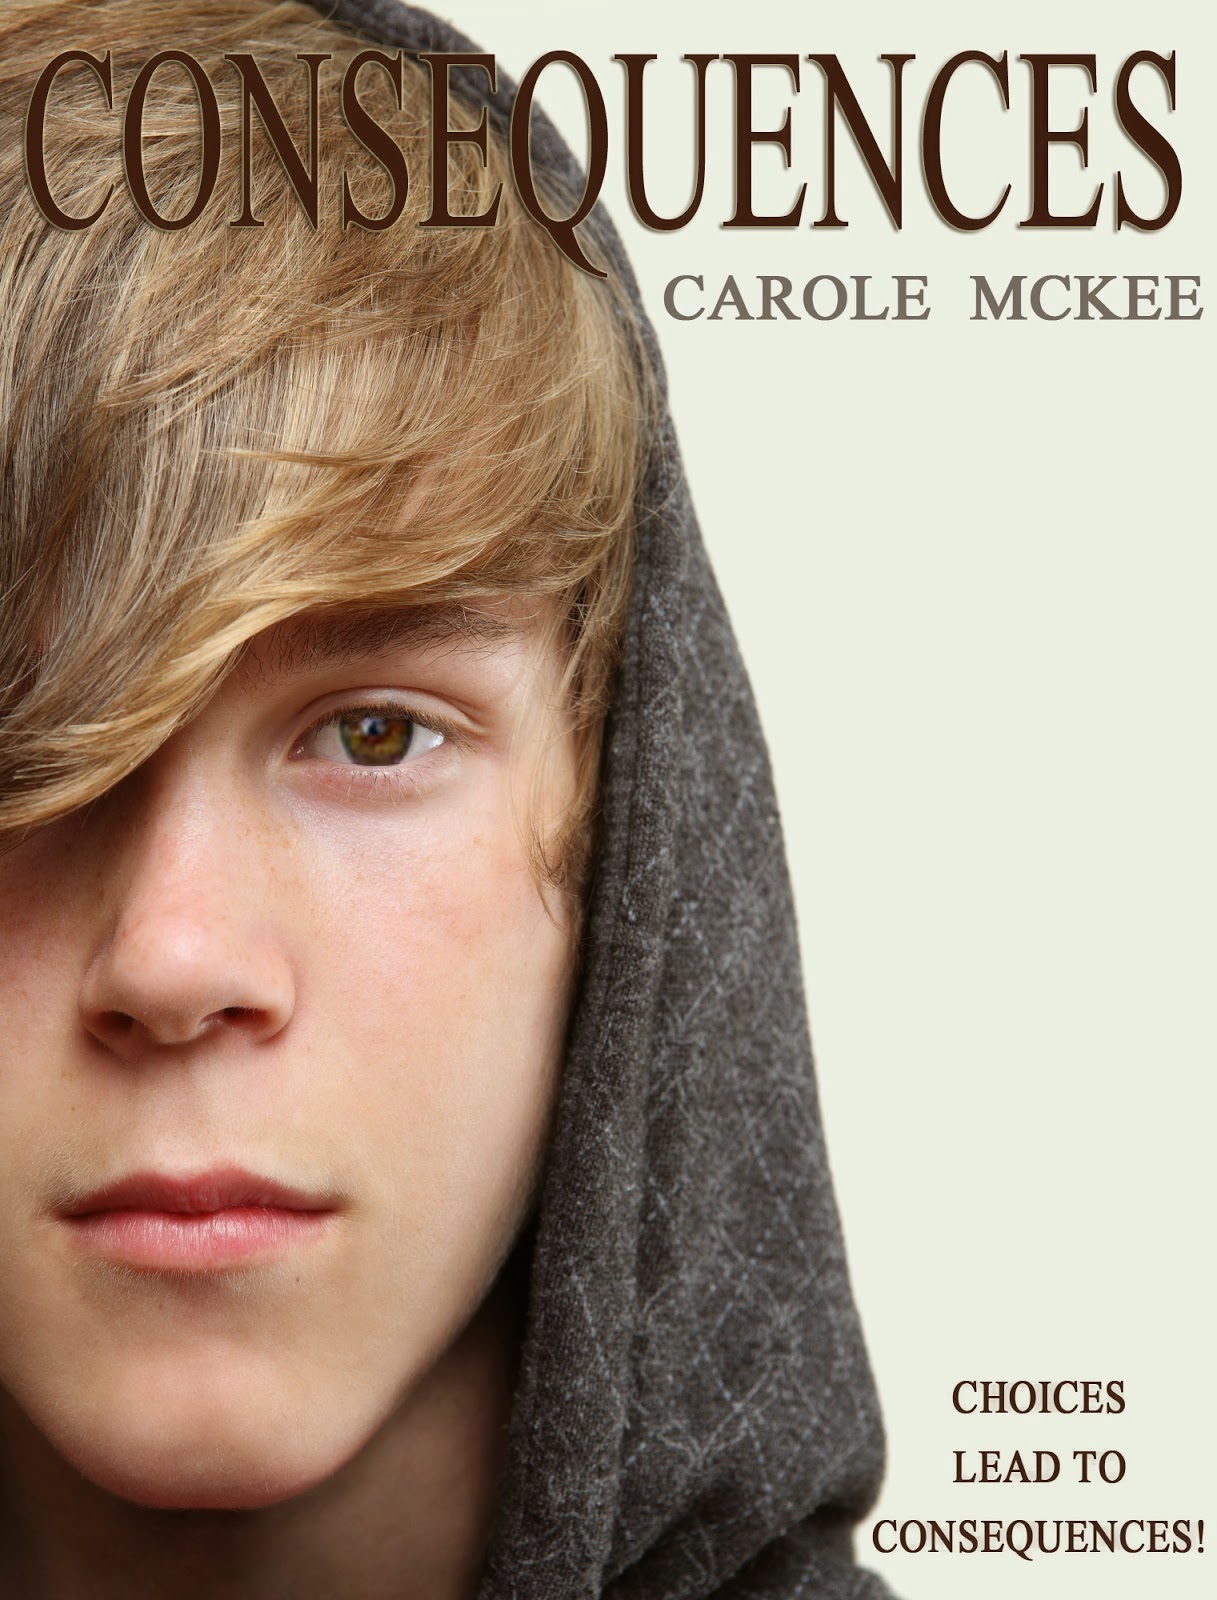 http://www.amazon.com/Consequences-Choices-Book-Carole-McKee-ebook/dp/B00CLY267I/ref=la_B0082D3810_1_3?s=books&ie=UTF8&qid=1419891588&sr=1-3